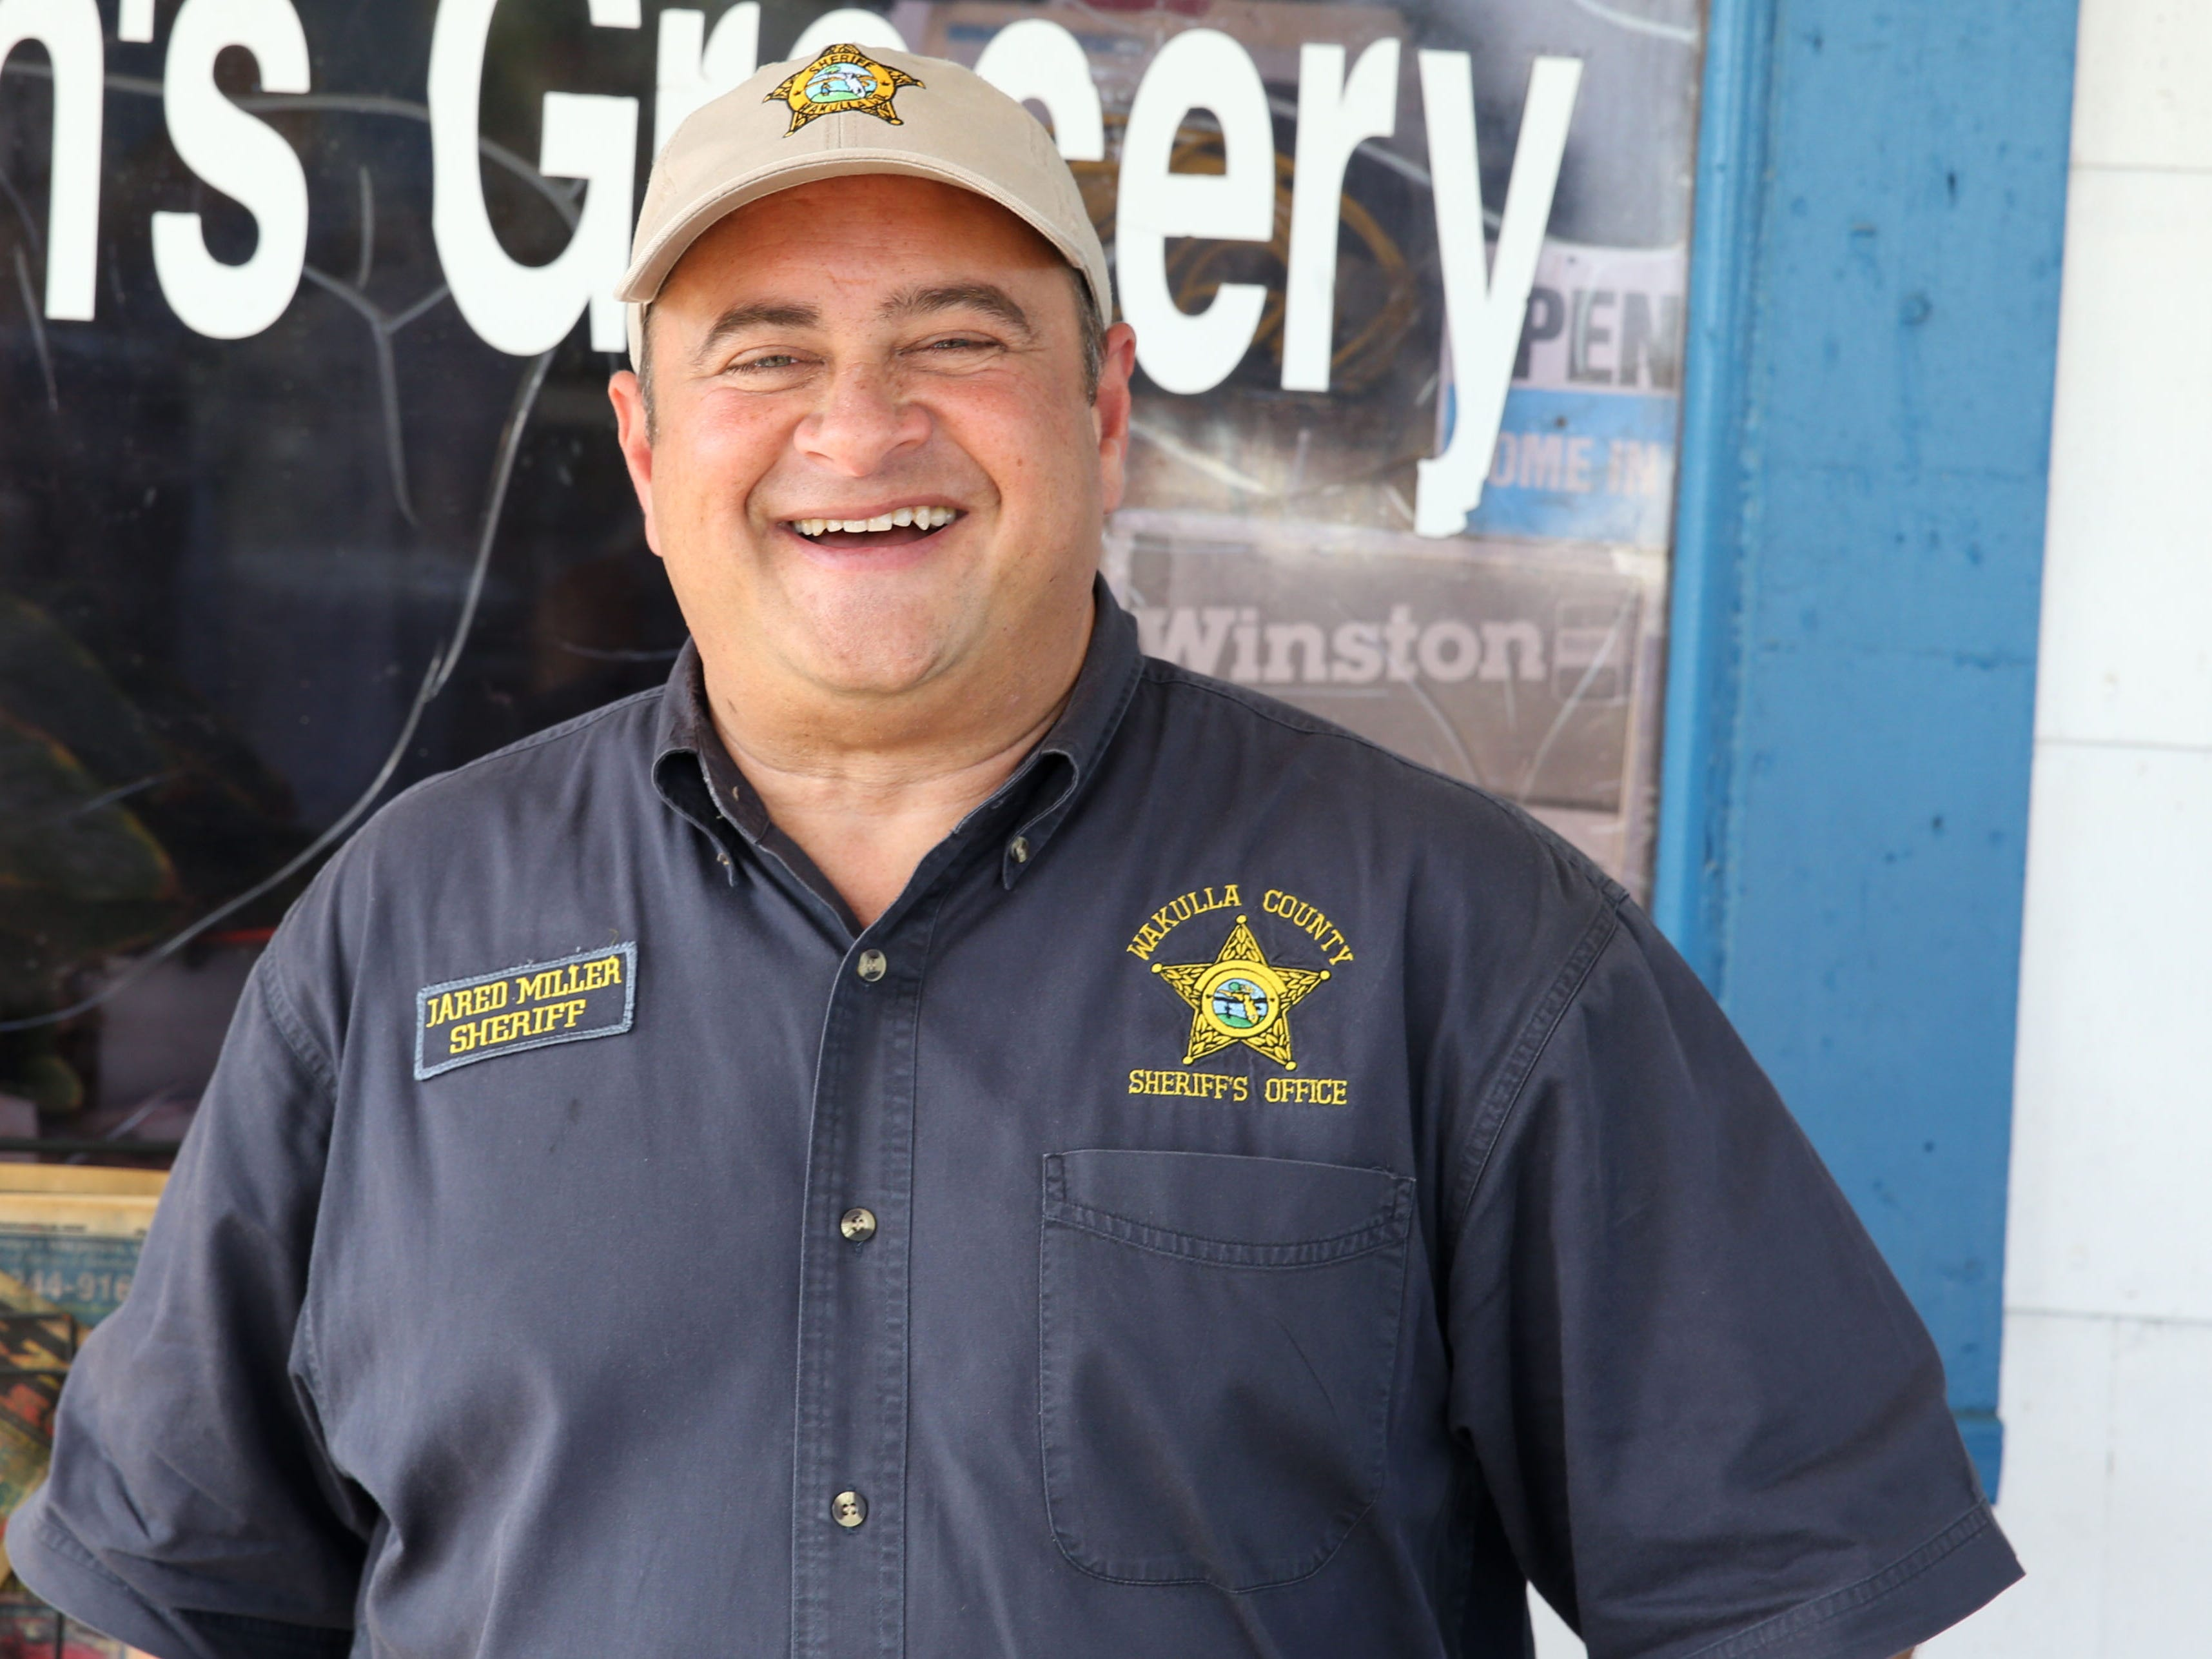 Wakulla County Sheriff, Jared Miller poses for a photo outside of Bo Lynn's Grocery in St. Marks, Fla. on Thursday, Oct. 11, 2018 after Hurricane Michael hits the panhandle.